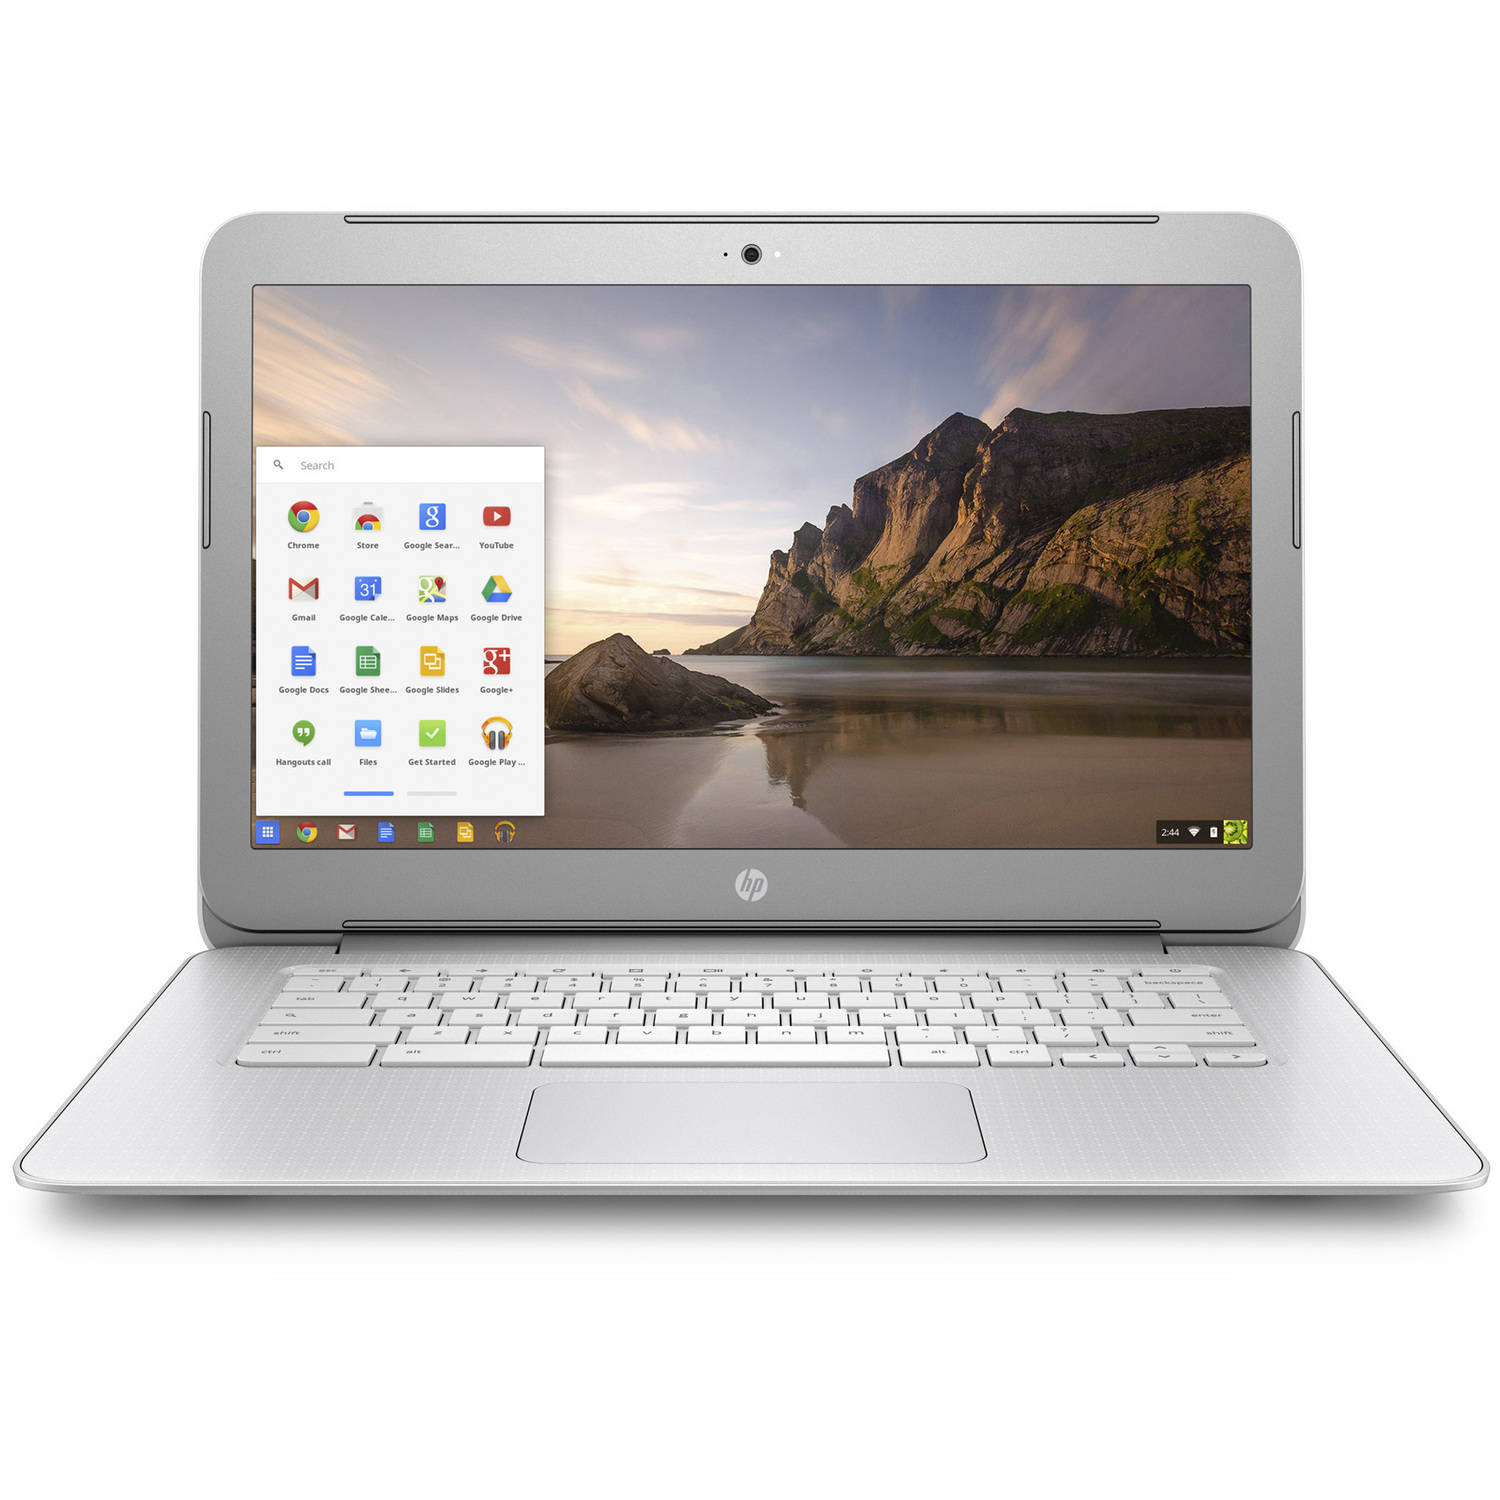 Notebook clipart chromebook Com Walmart  Chromebook Quad